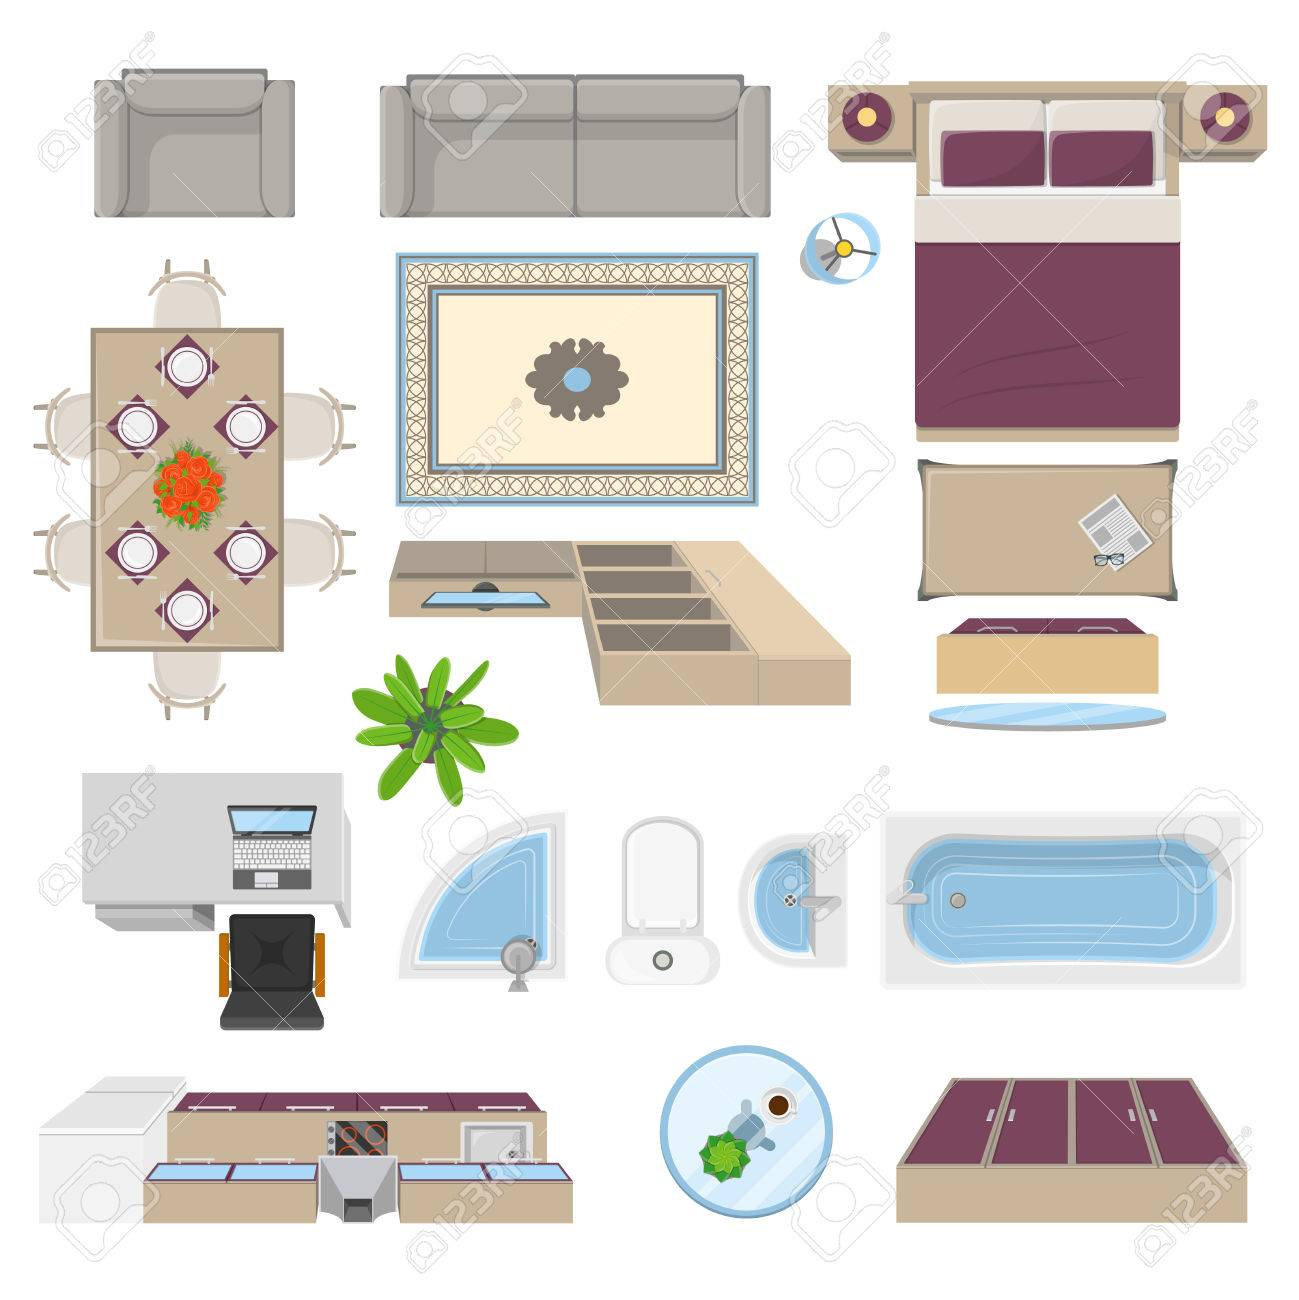 Interior Elements Top View Position With Kitchen Lounge Bathroom Royalty Free Cliparts Vectors And Stock Illustration Image 66734954